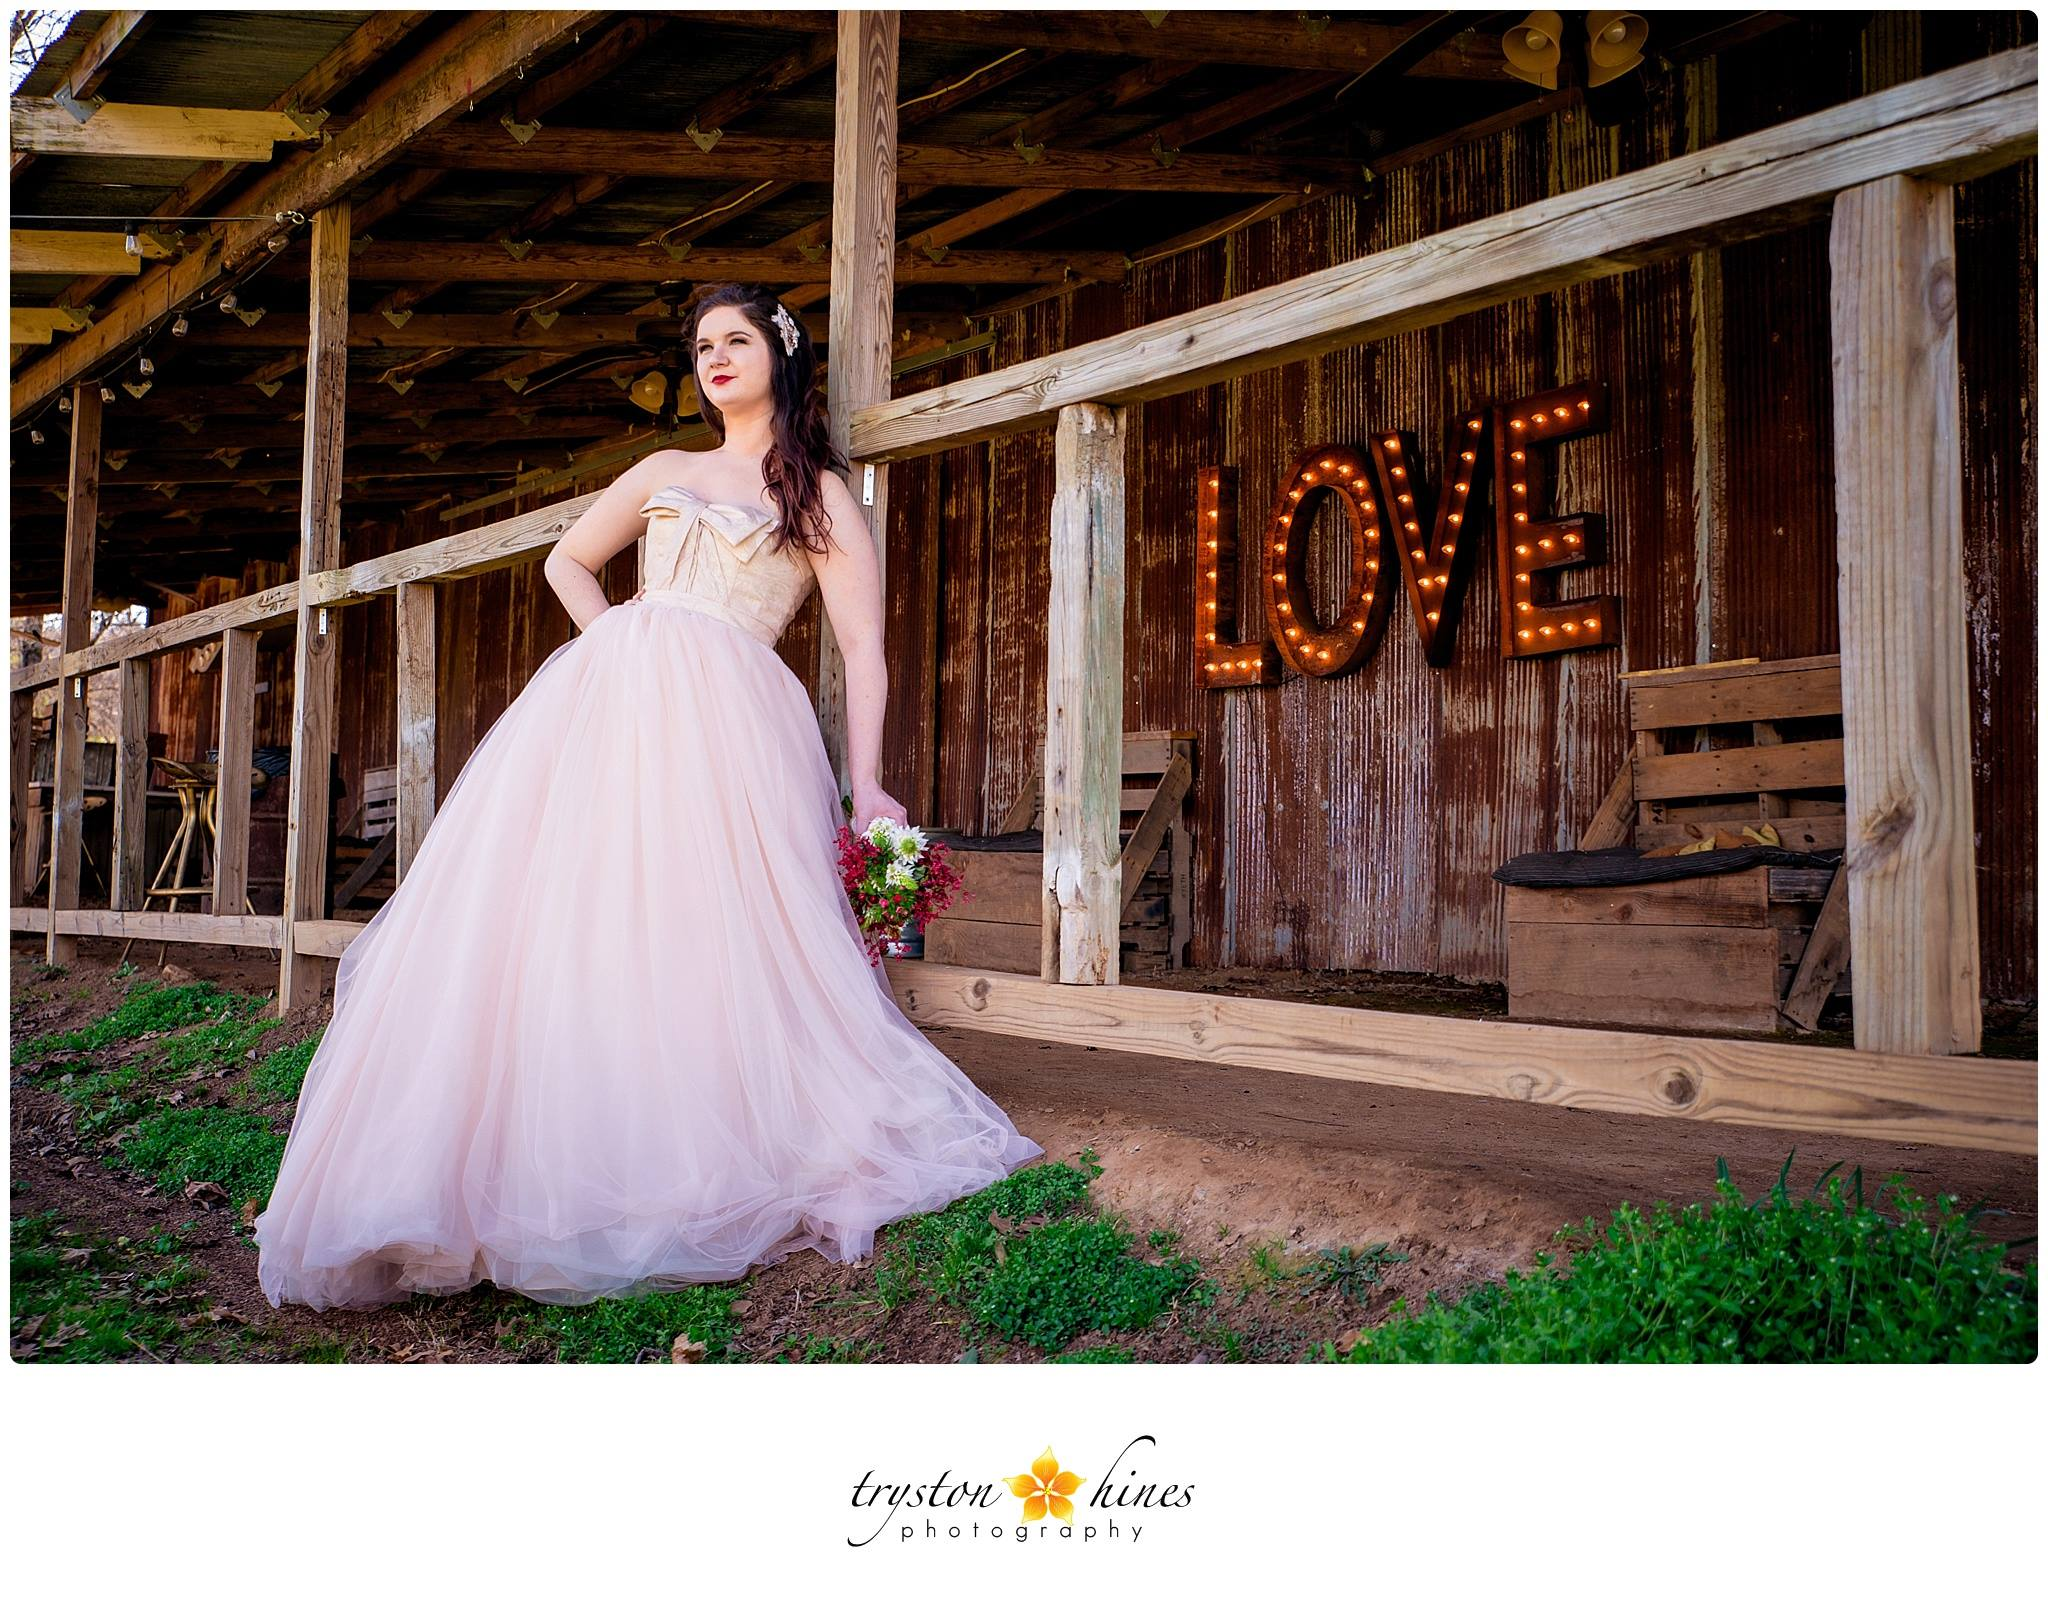 Tryston Hines Photography , from  Katie + Alan 's wedding at The Barn. Valentine's Day is the perfect time for a blush bridal gown, red lips, and our famous LOVE marquee sign!